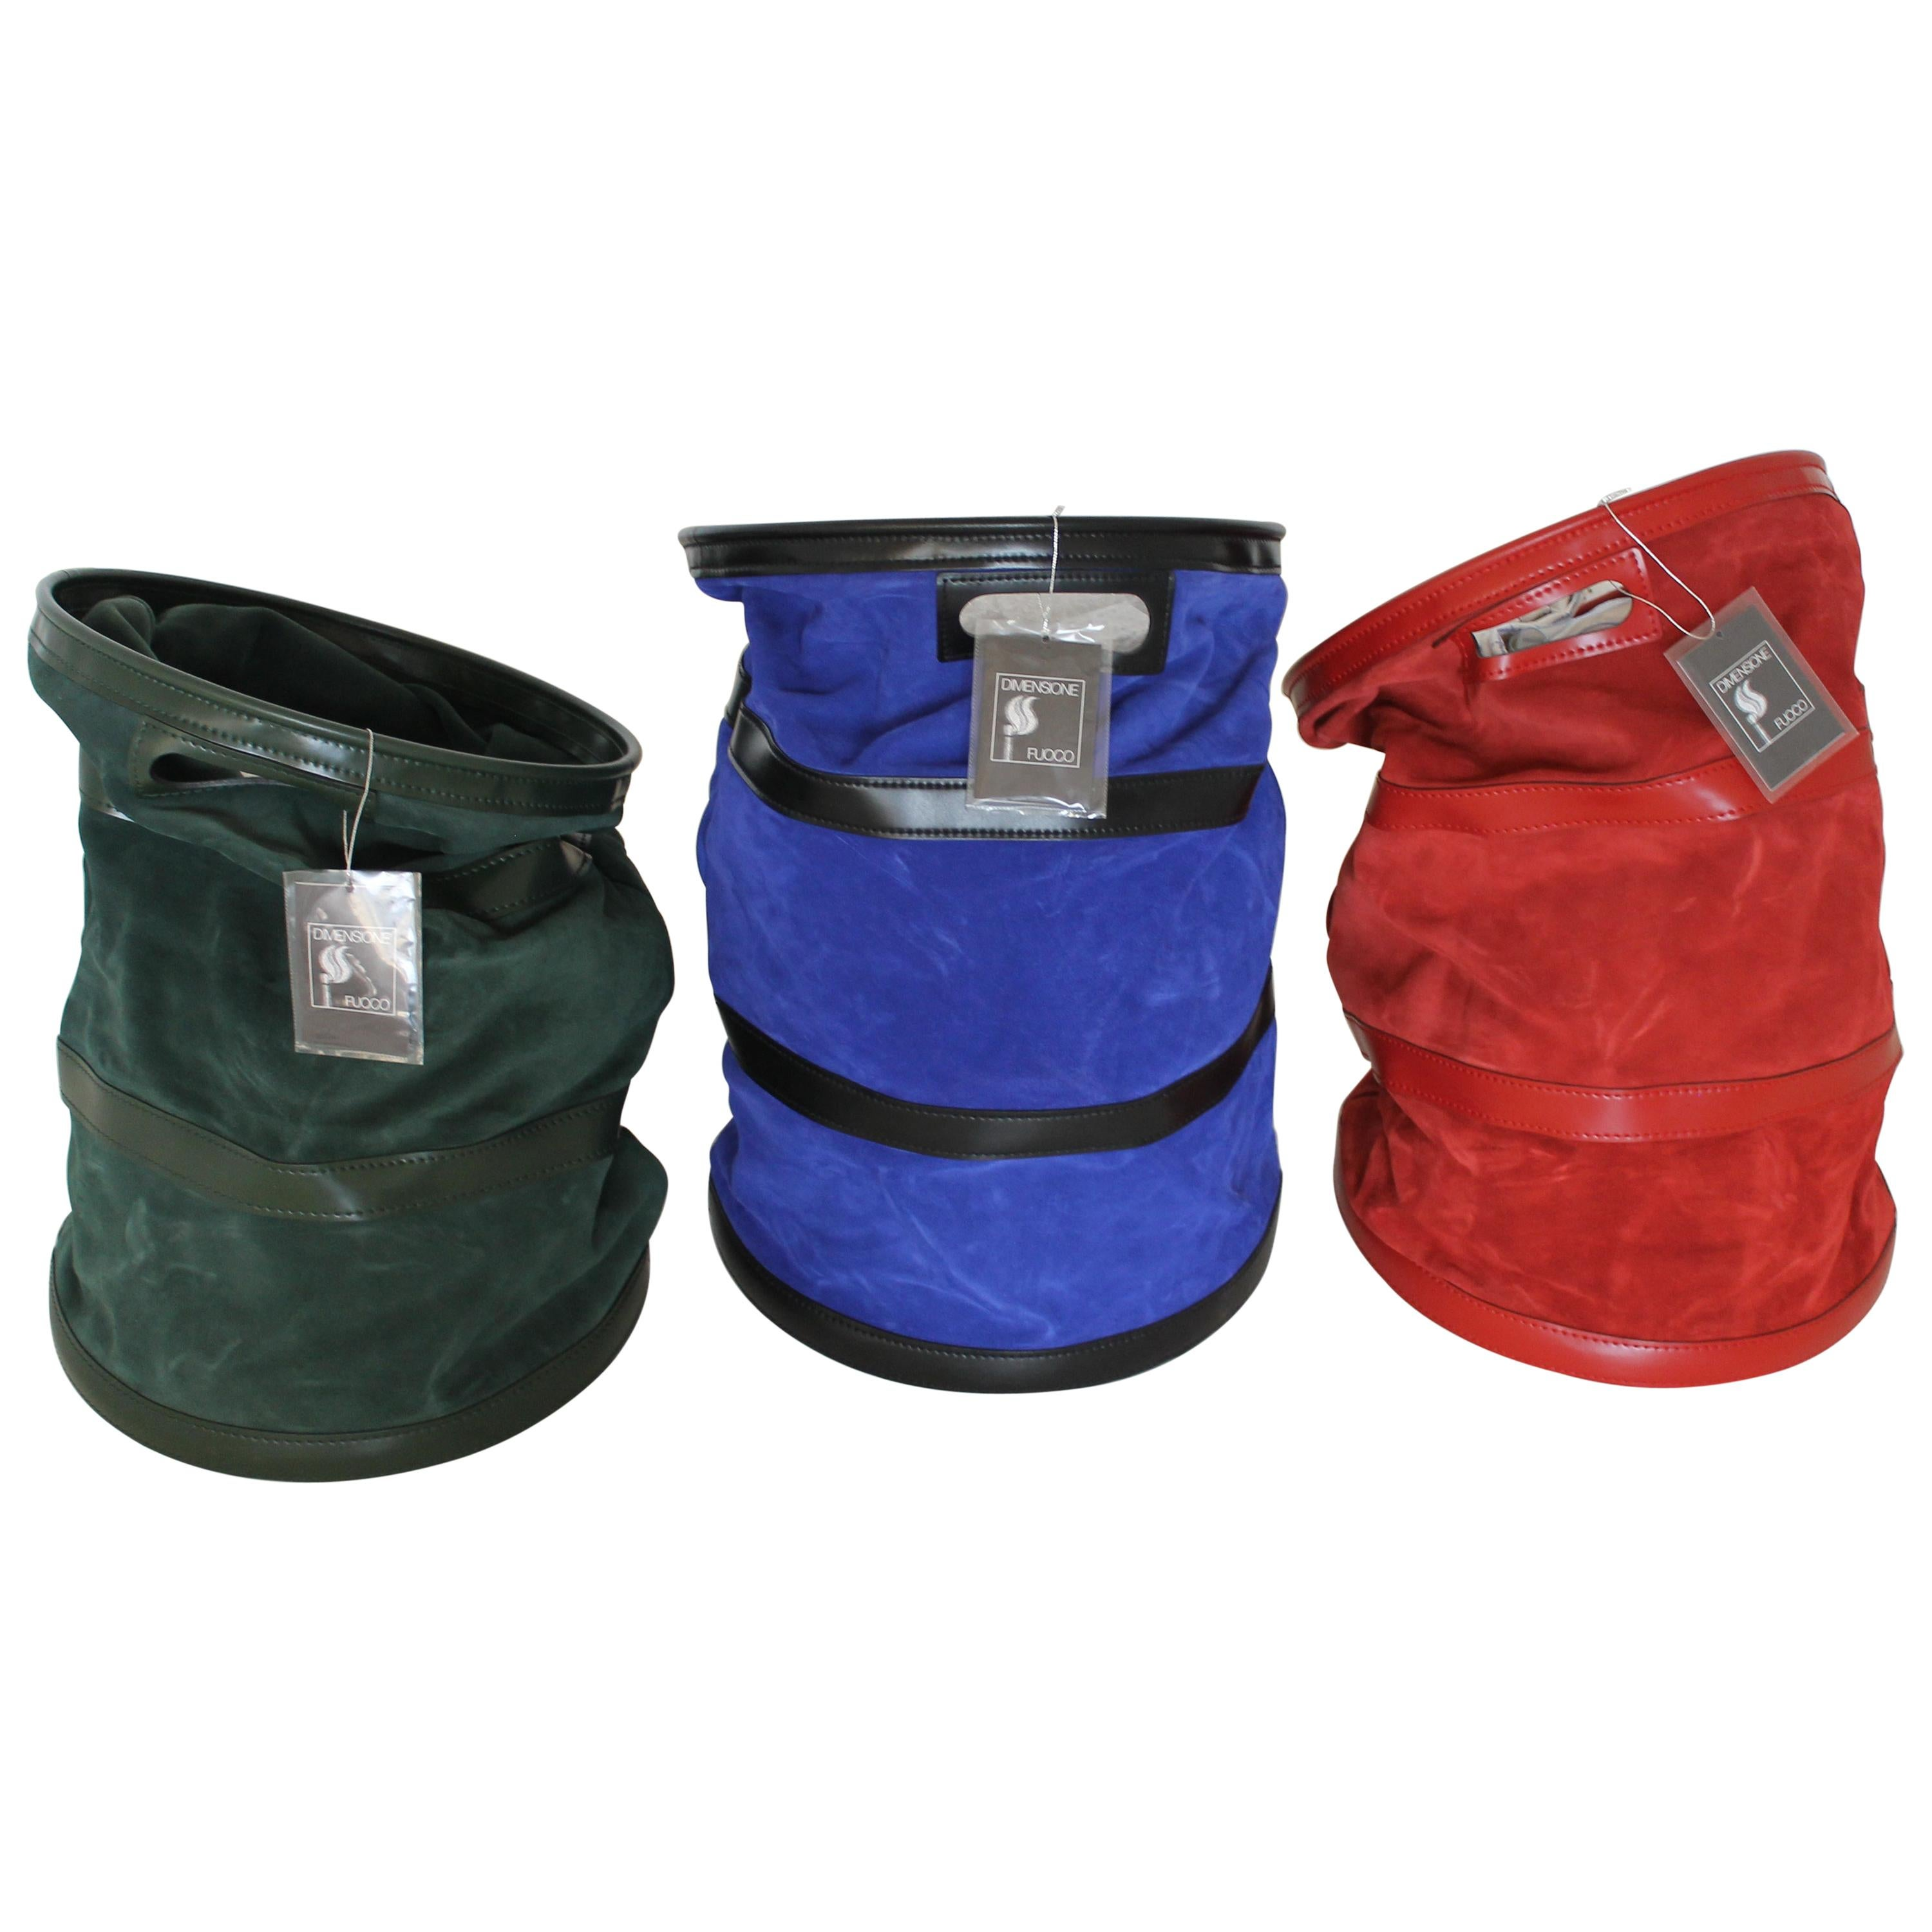 Tobia Scarpa, Dimensione Fuoco Green, Red and Blue Leather Wood Carrier, Italy